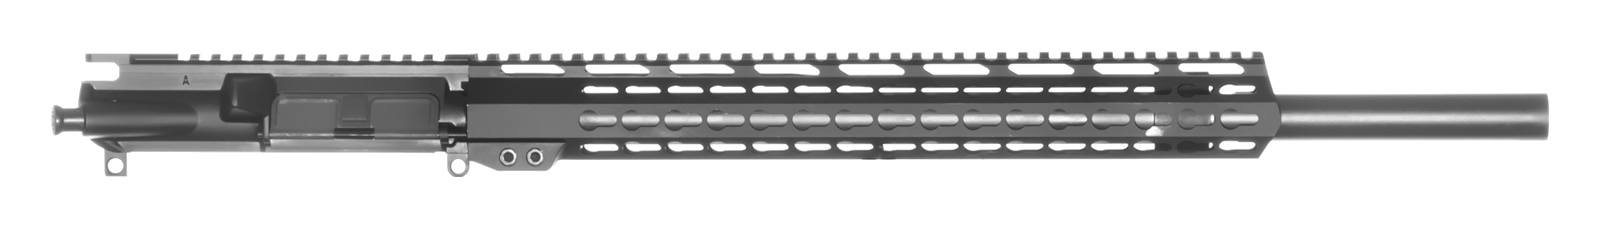 ar15-upper-assembly-20-inches-bull-barrel-223-wylde-160007